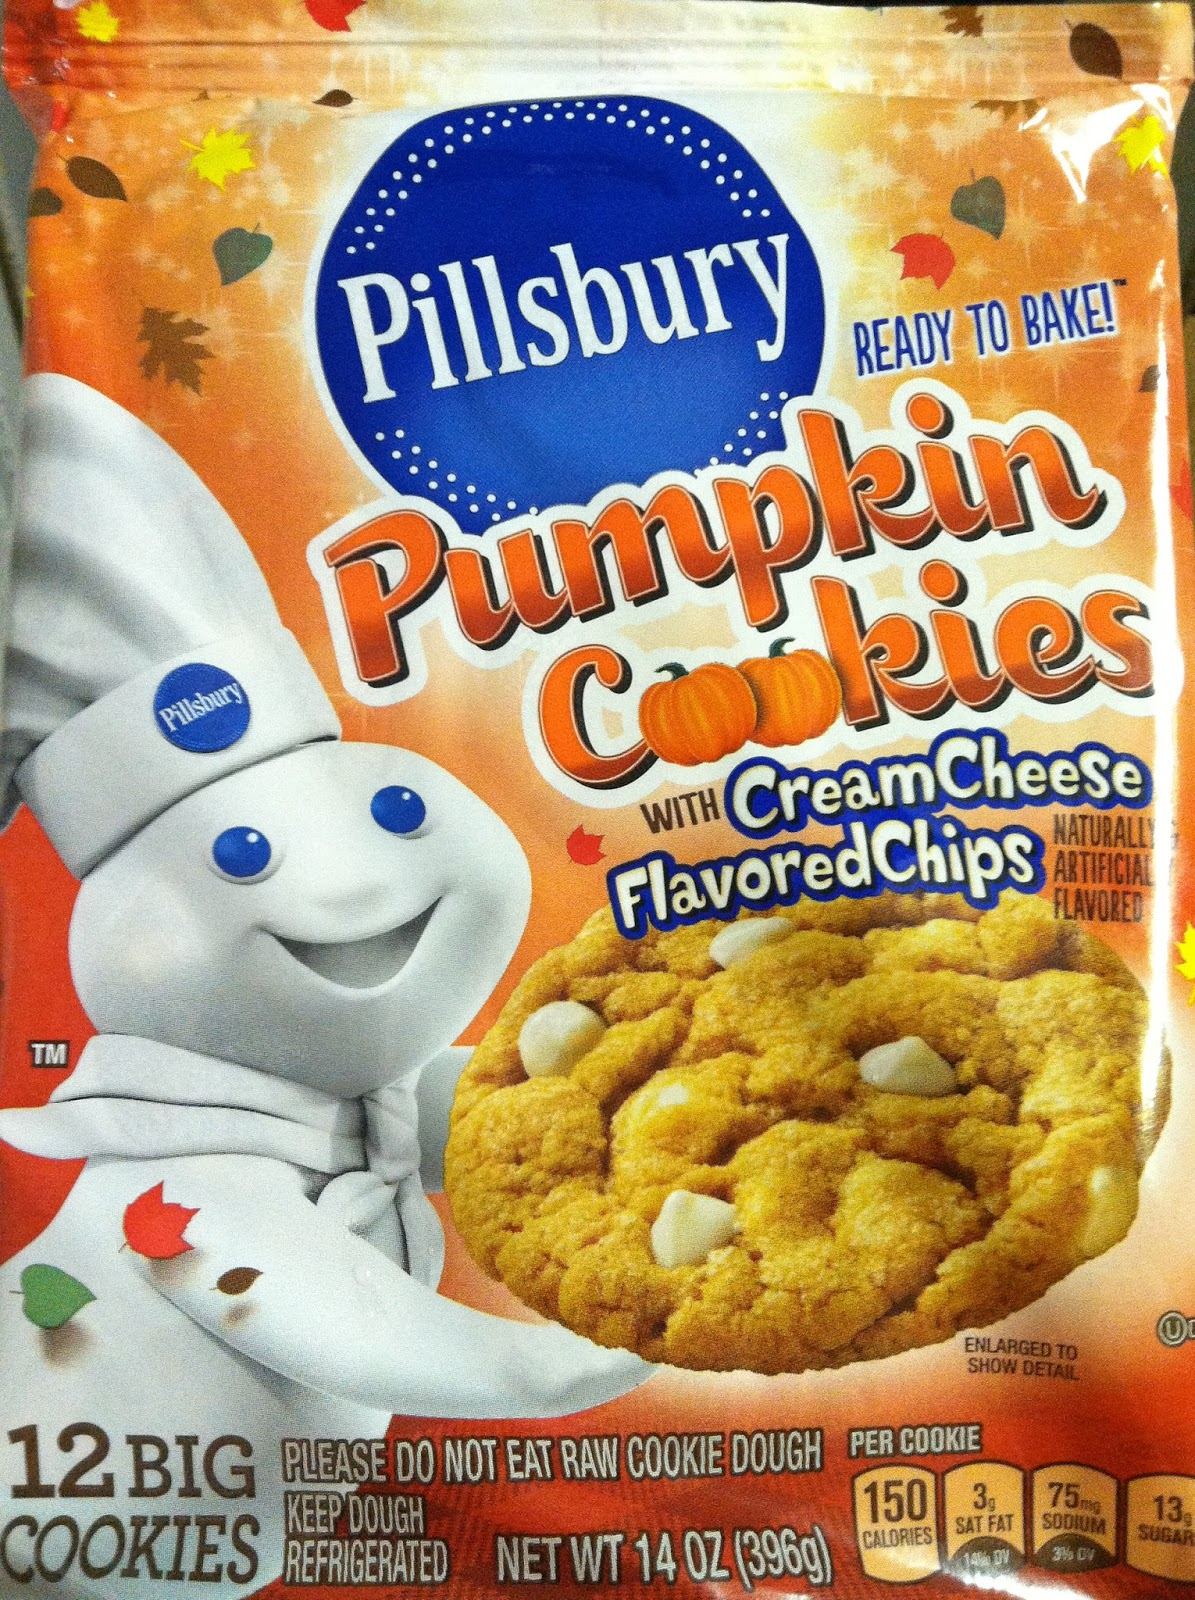 The Holidaze: Pillsbury Pumpkin Cookies